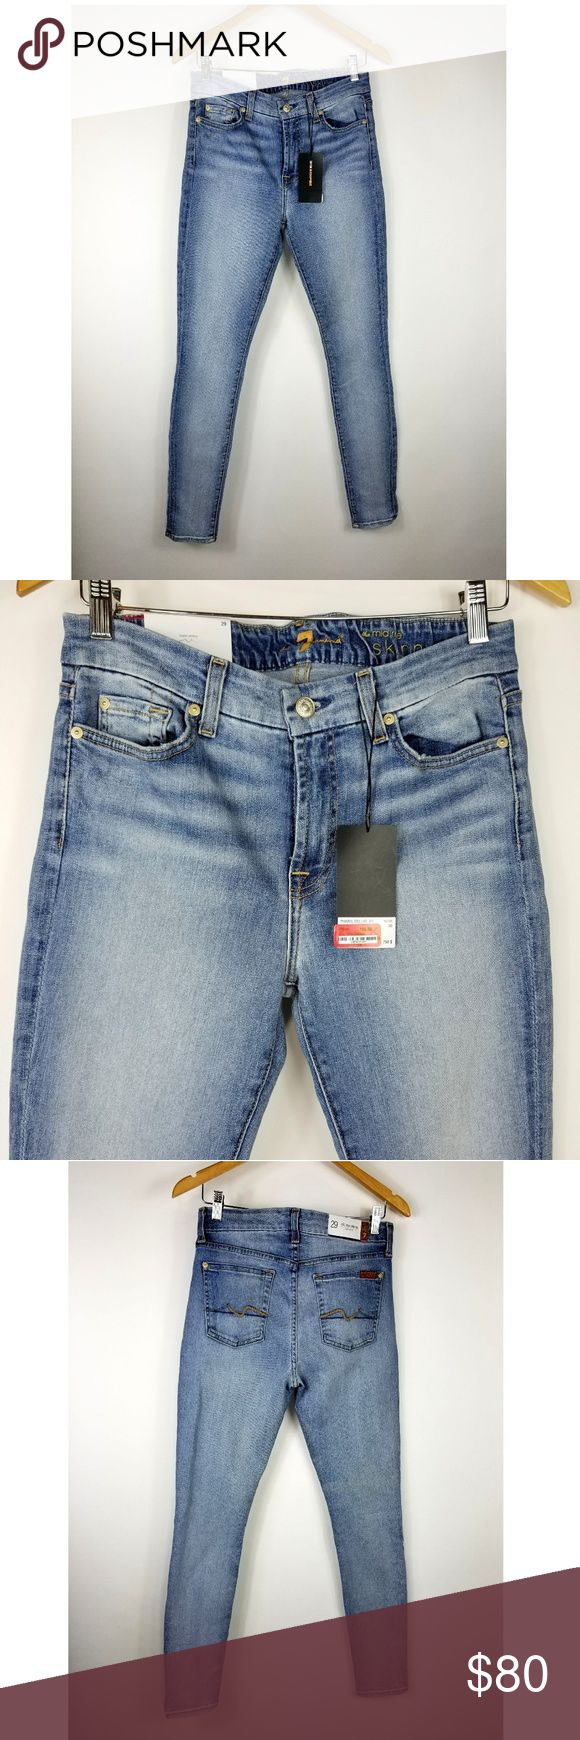 """7 For All Mankind Mid Rise Skinny Jeans 7 For All Mankind women's mid rise skinny jeans in a light wash. Size 29. Made of a stretchy 98% cotton, 2% spandex blend. New with tags  14.5"""" across at waist 9.75"""" rise 30.5"""" inseam 5"""" leg opening 7 for all Mankind Jeans Skinny"""